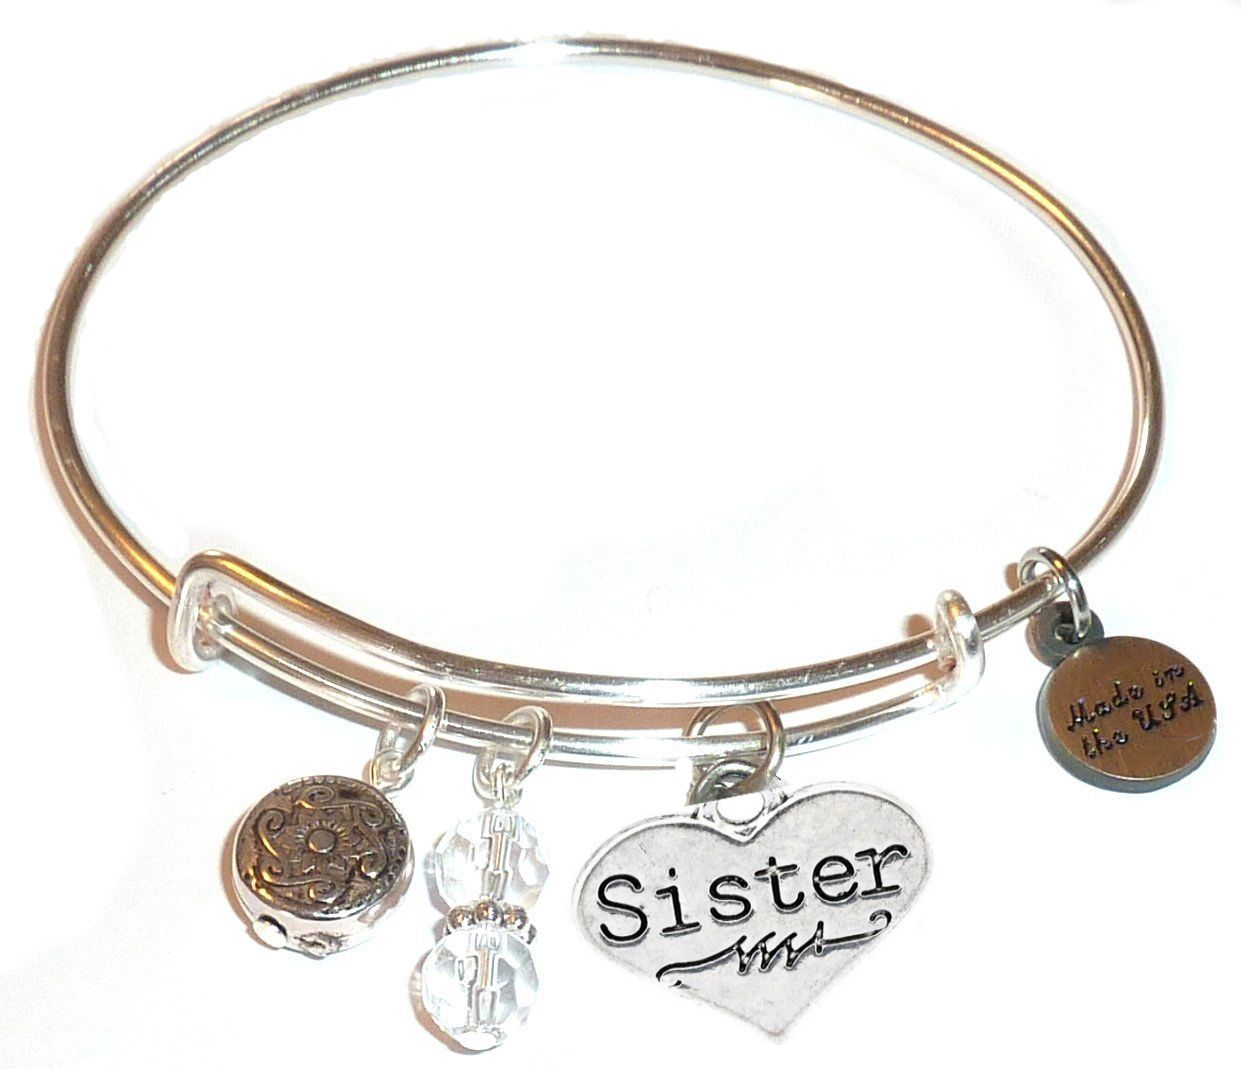 Nurse gift ideas - sister bangle bracelet